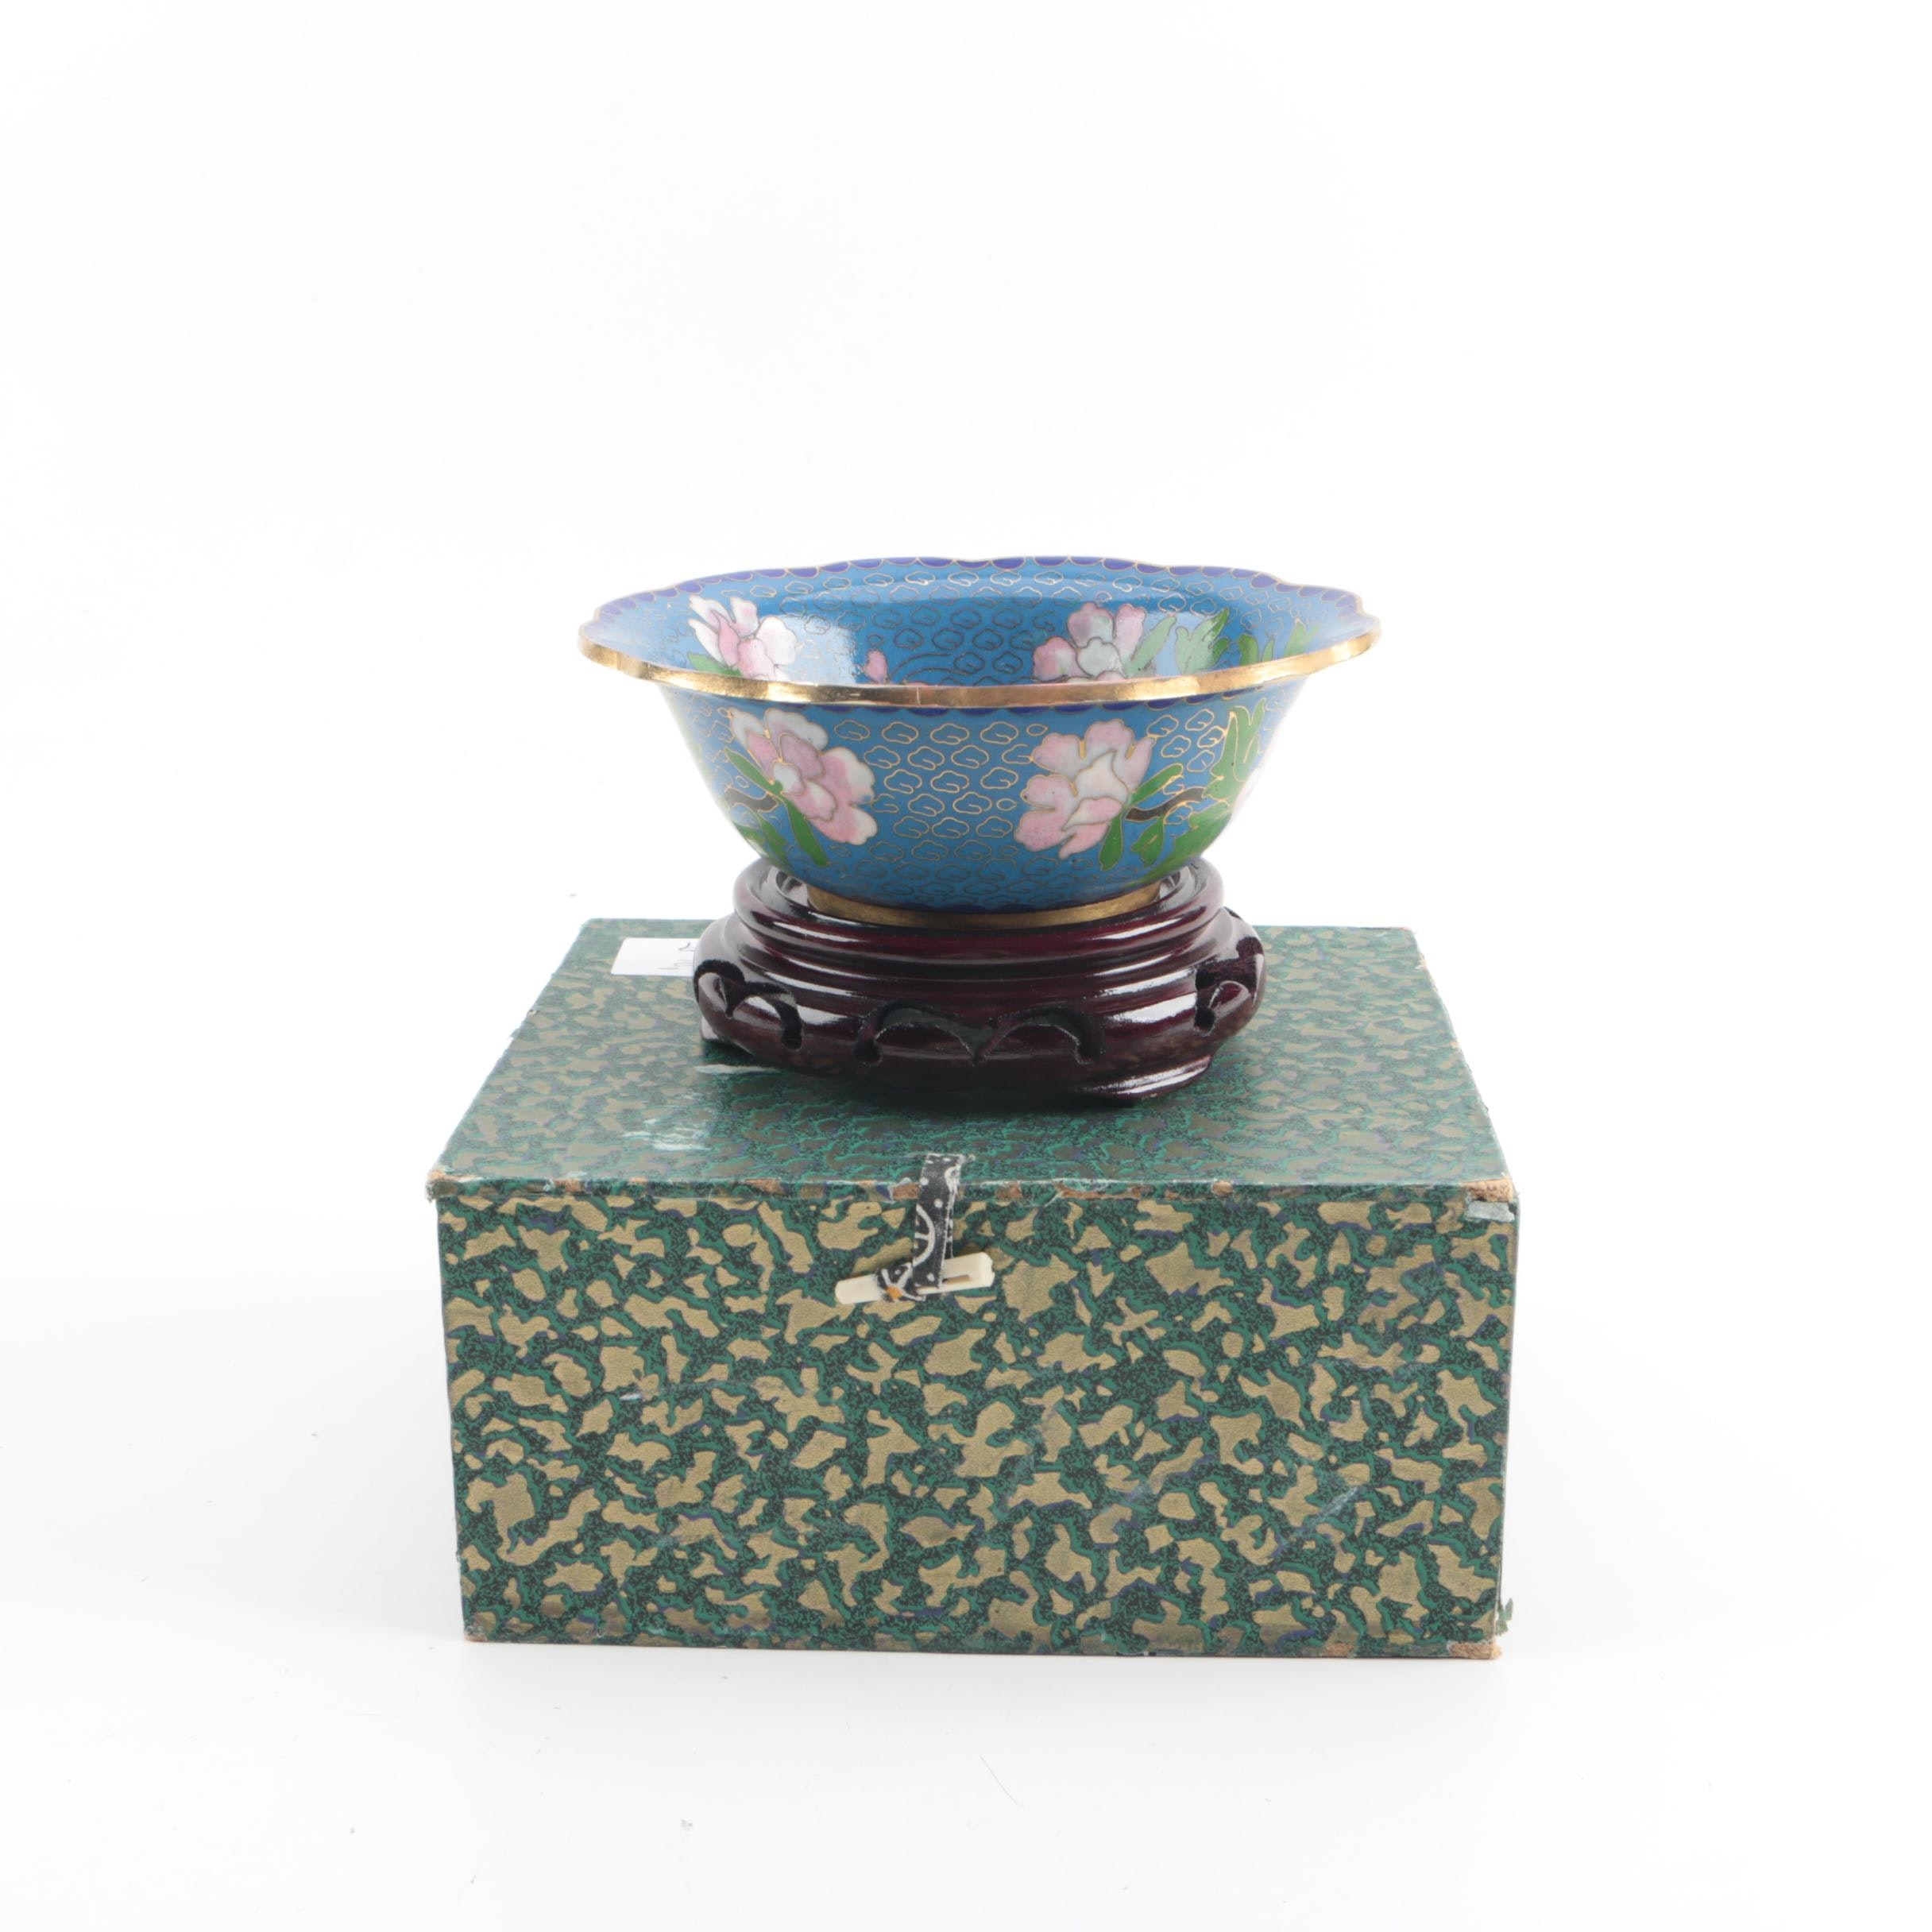 Chinese Cloisonné Pink Peony Motif Bowl on Wood Stand